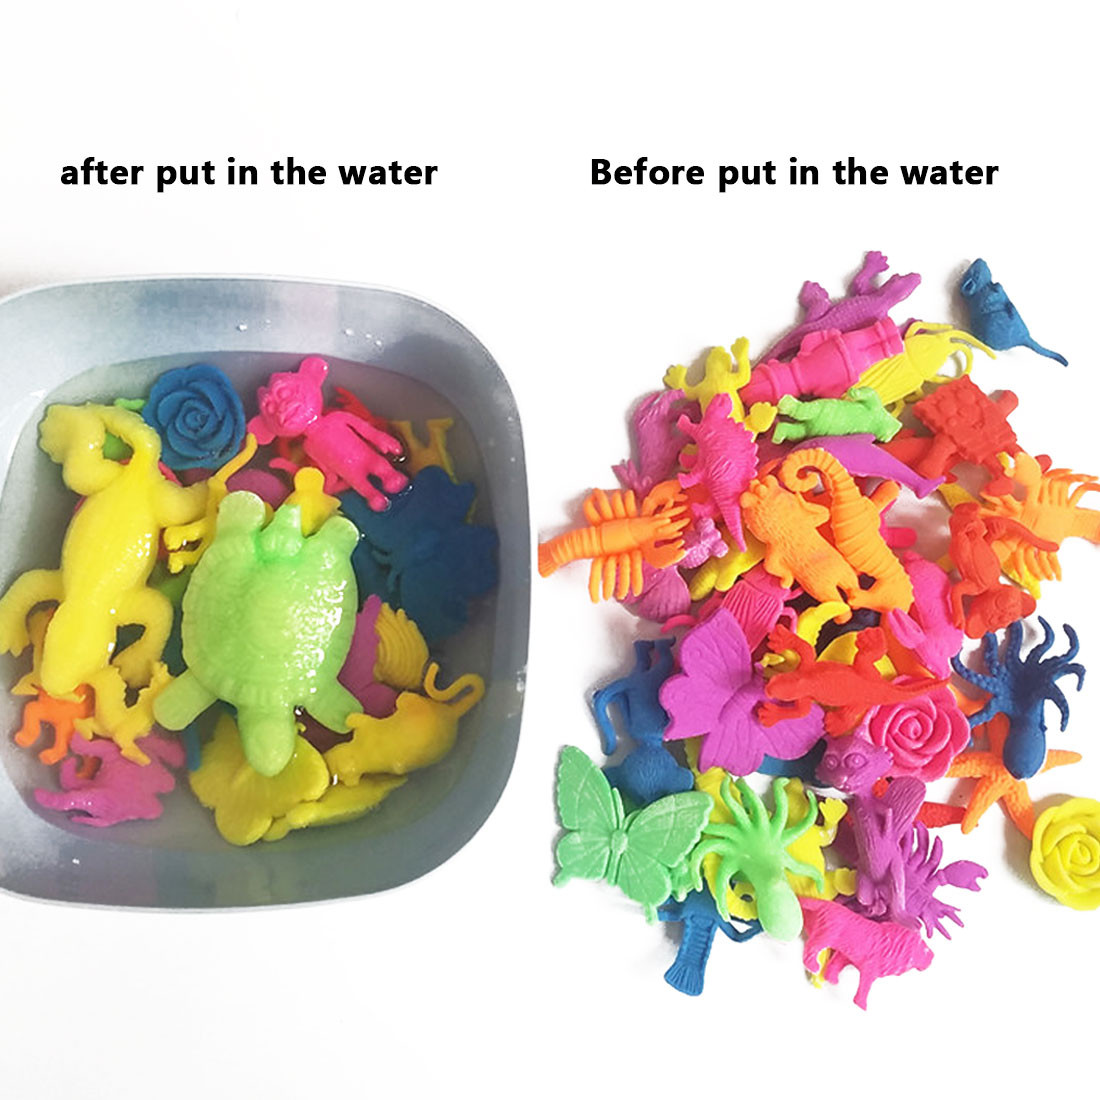 water gel beads for vases of kids toy home decoration magic hydrogel sea animals dinosaur wild intended for package 10pcs